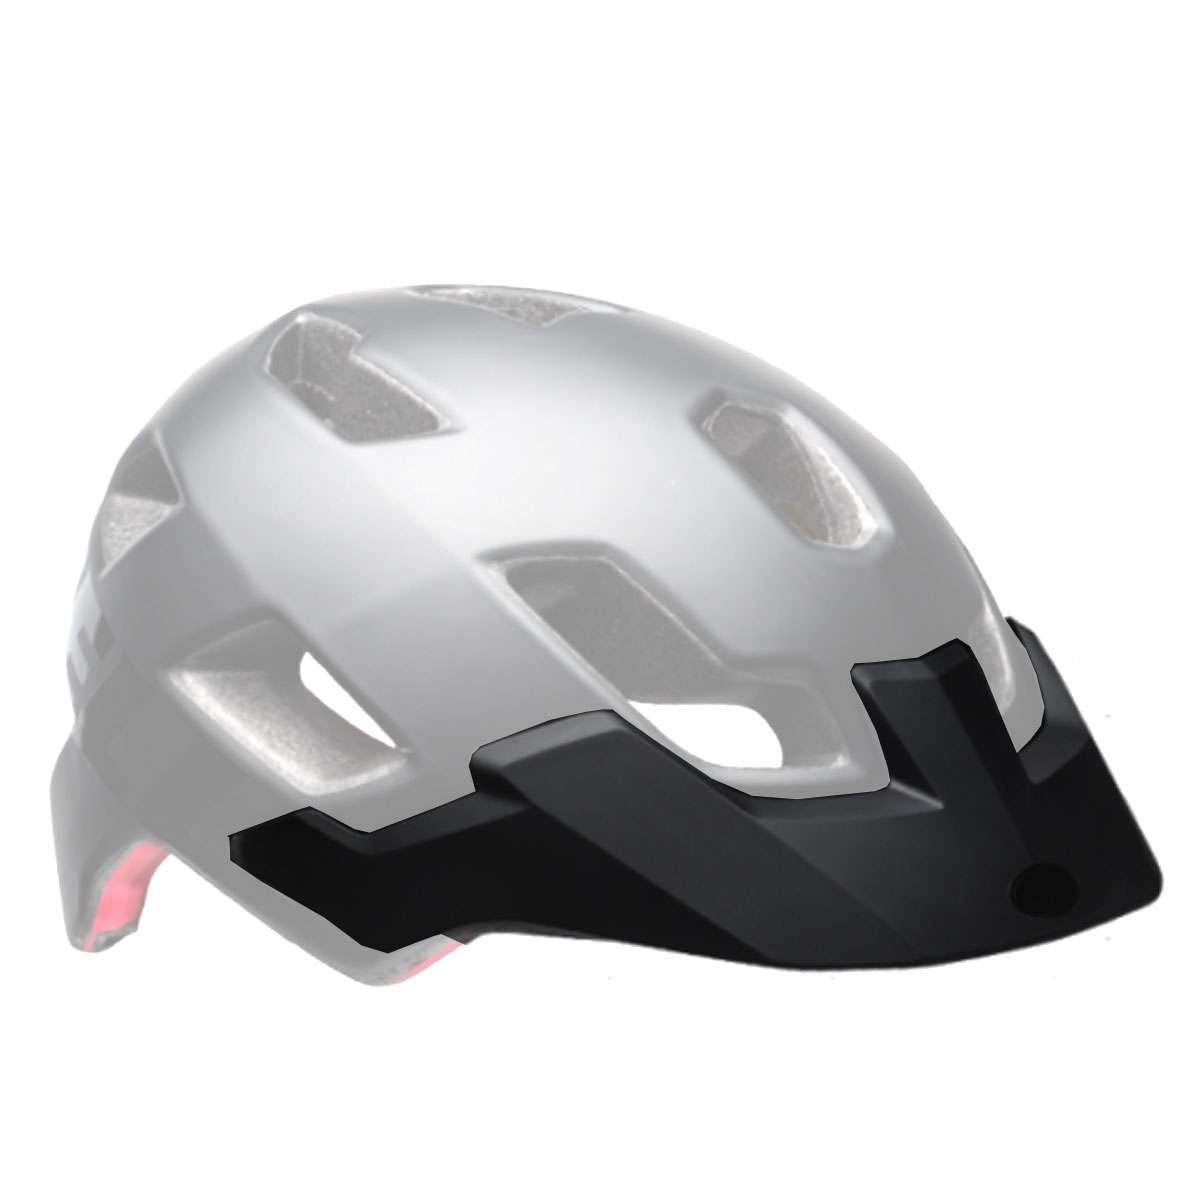 Bell Sports Stoker Helmet - Replacement Visor - Matte Black/Red Aggression - 8047342